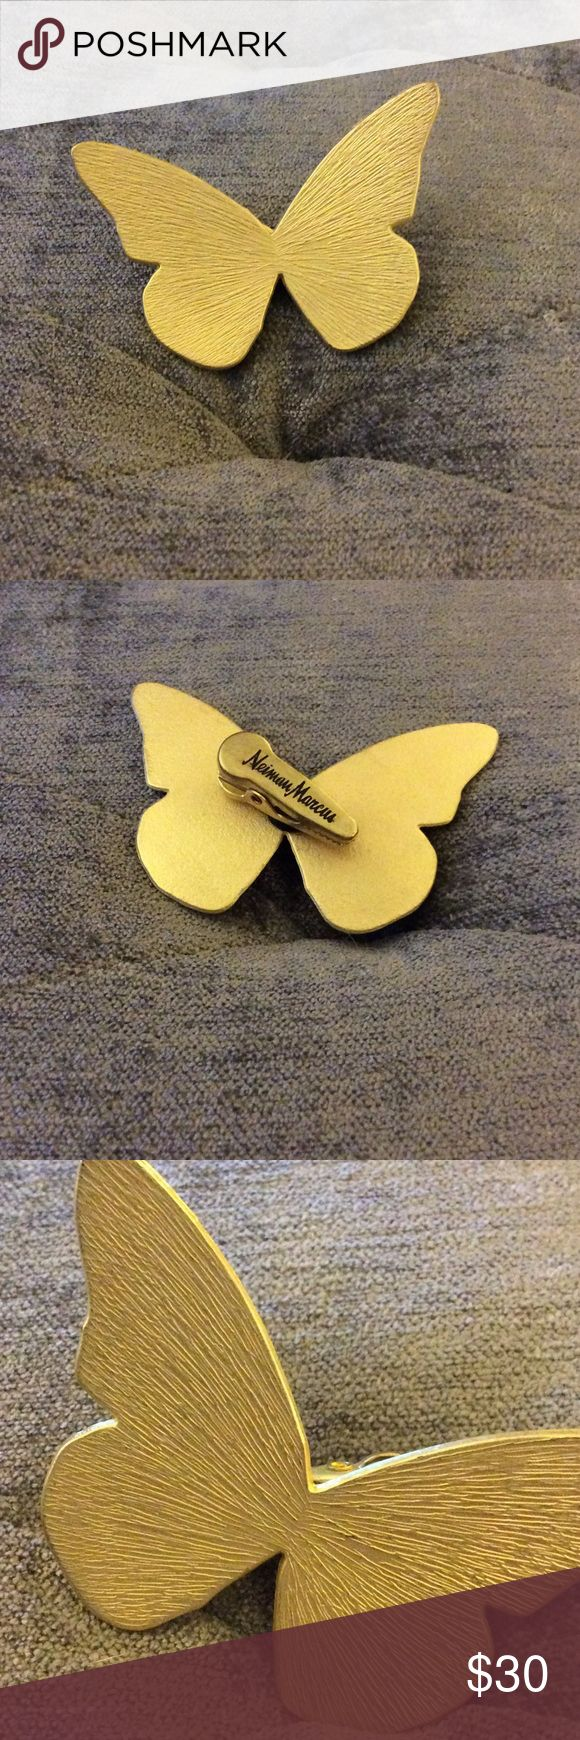 Neiman Marcus Gold Butterfly Clip Beautiful gold butterfly clip from Neiman Marcus.  Never used and would be cute on a jacket, hat or bag. Neiman Marcus Jewelry Brooches